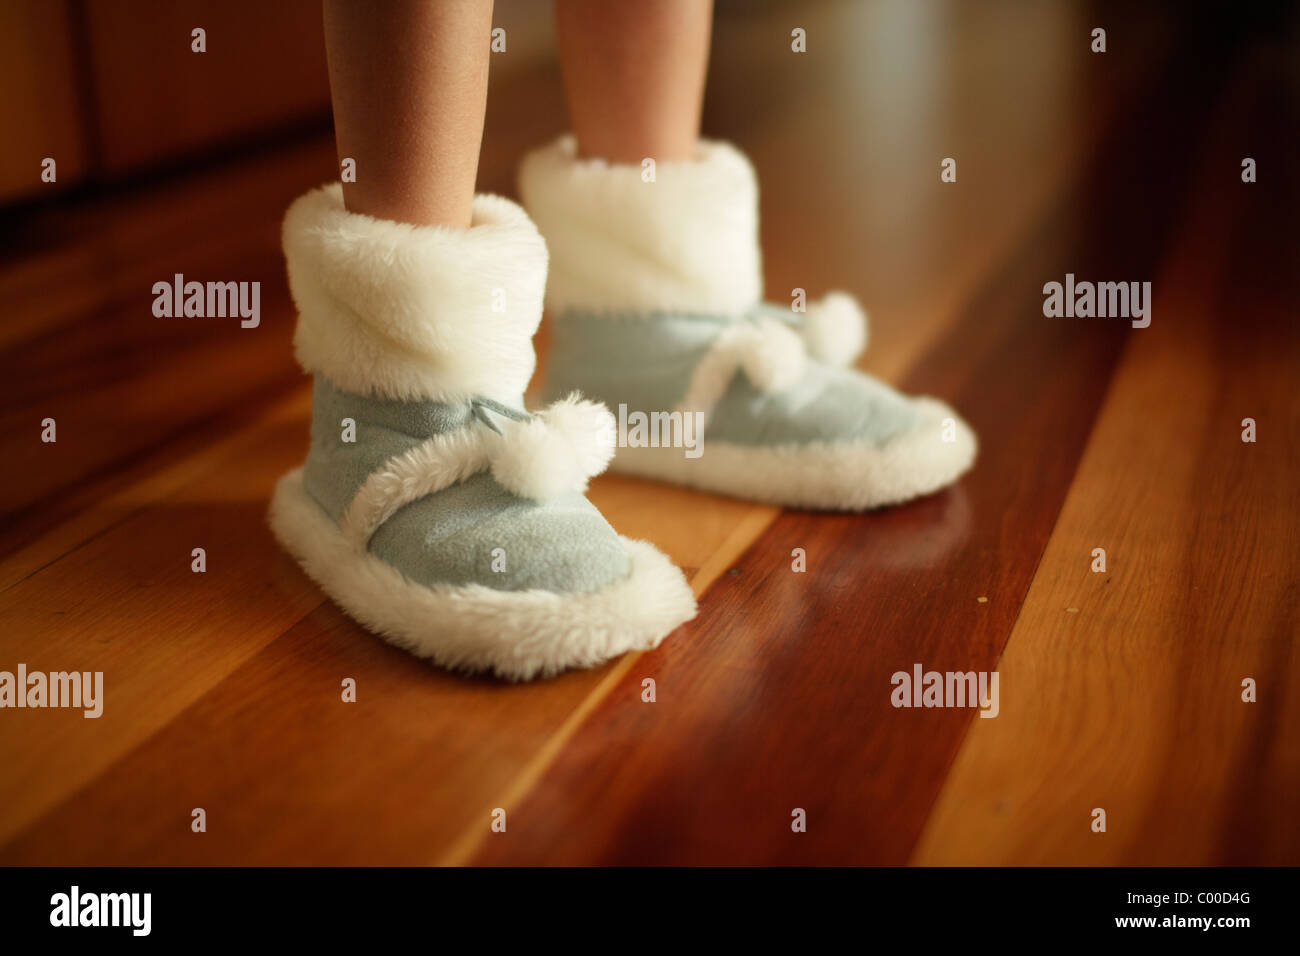 Girl's warm slippers on wooden floor made from synthetic sheepskin - Stock Image